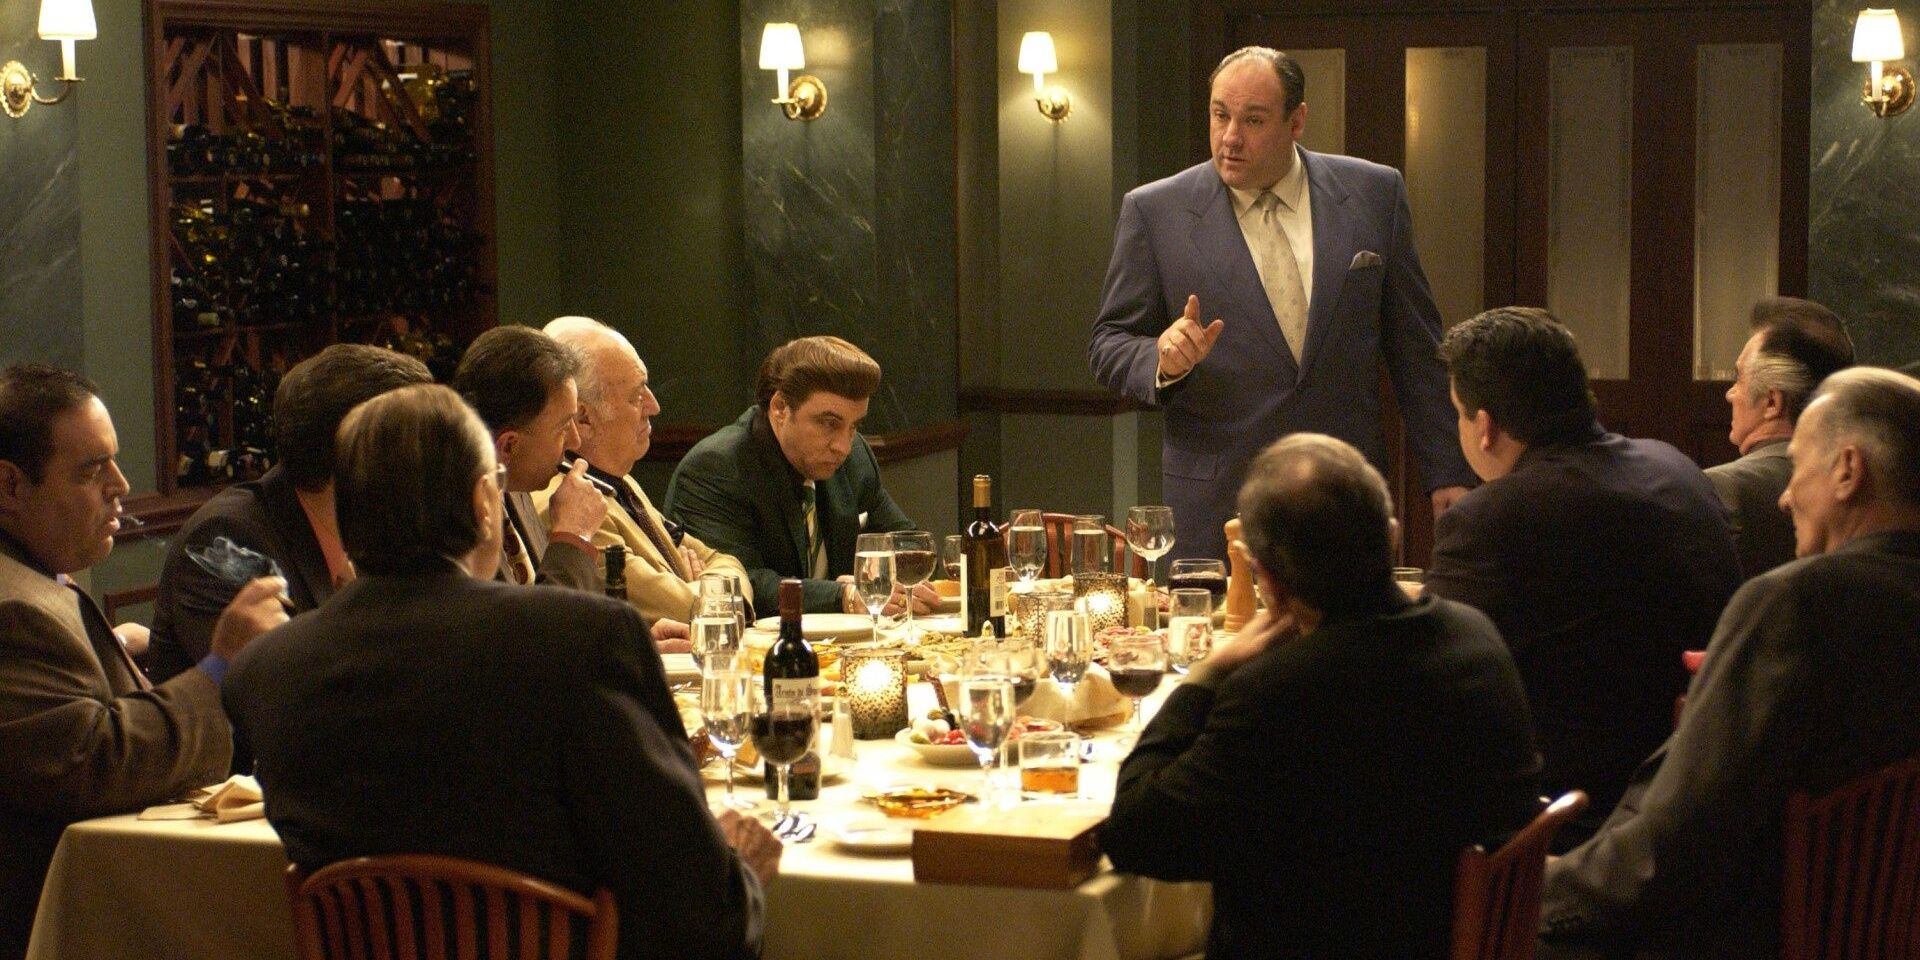 The Sopranos: The 10 Best Episodes Of The Series, According To IMDb